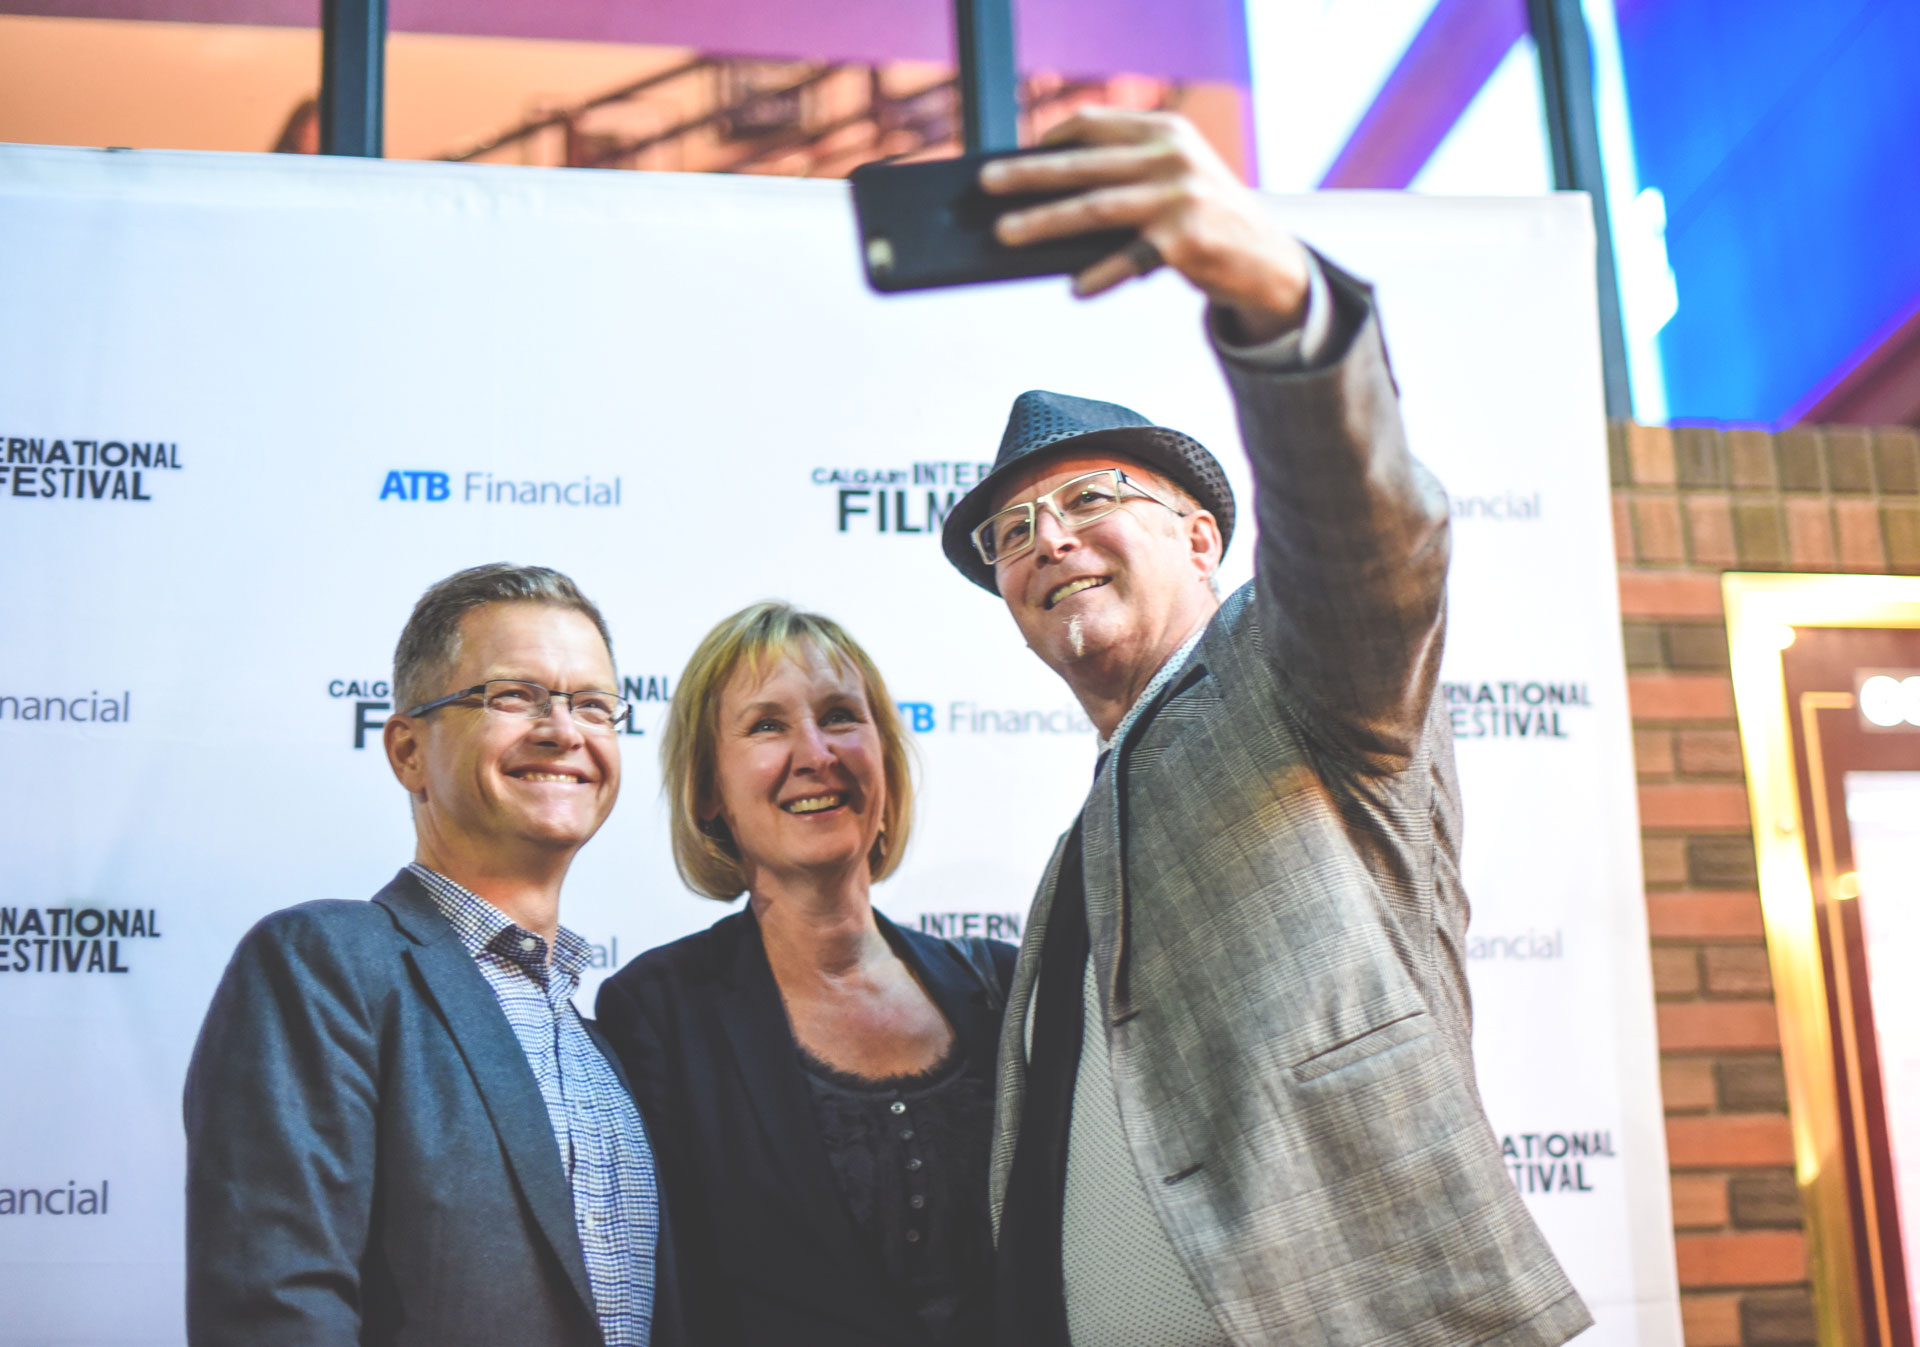 Walk the red carpet at the Calgary International Film Festival.